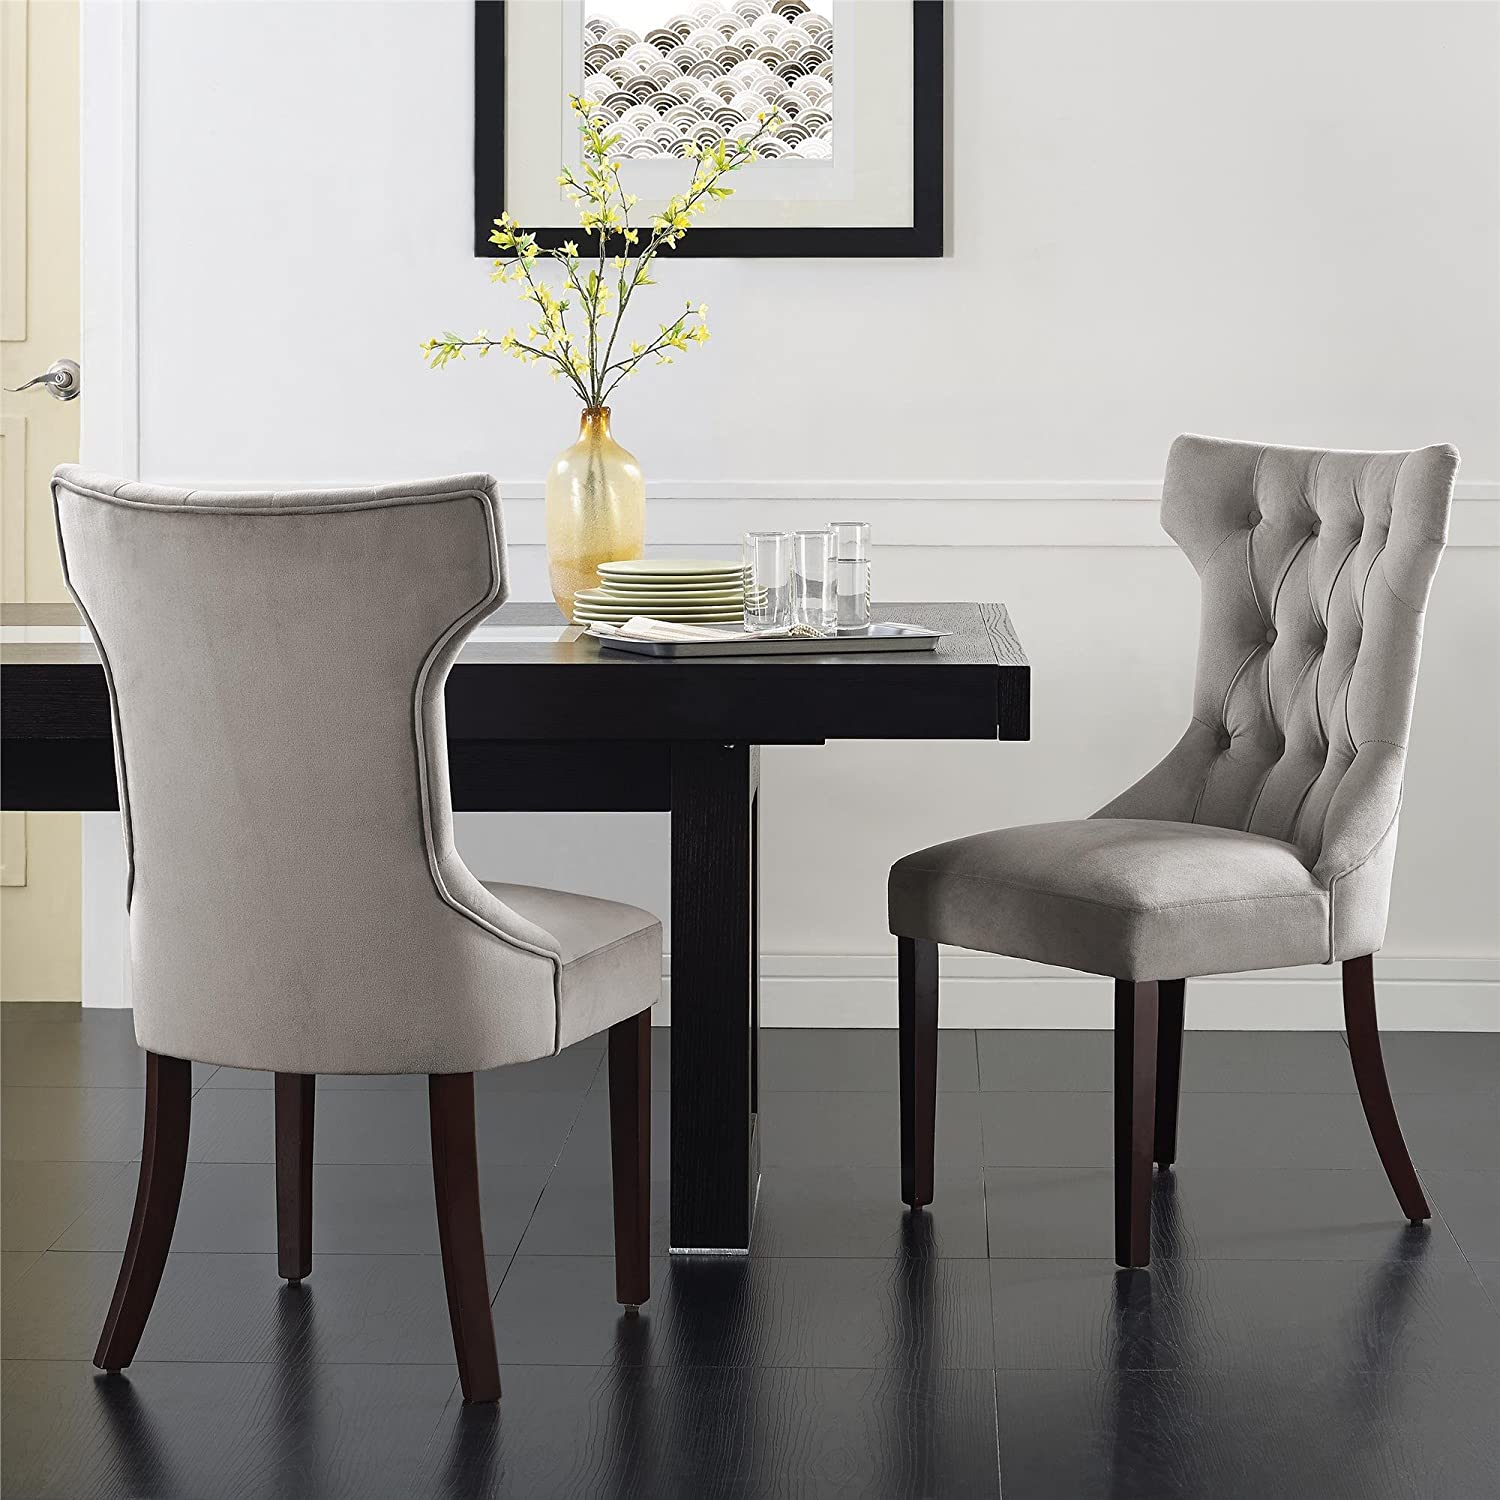 Taupe Dining Room Chairs Amazoncom Dorel Living Clairborne Tufted Upholestered Dining